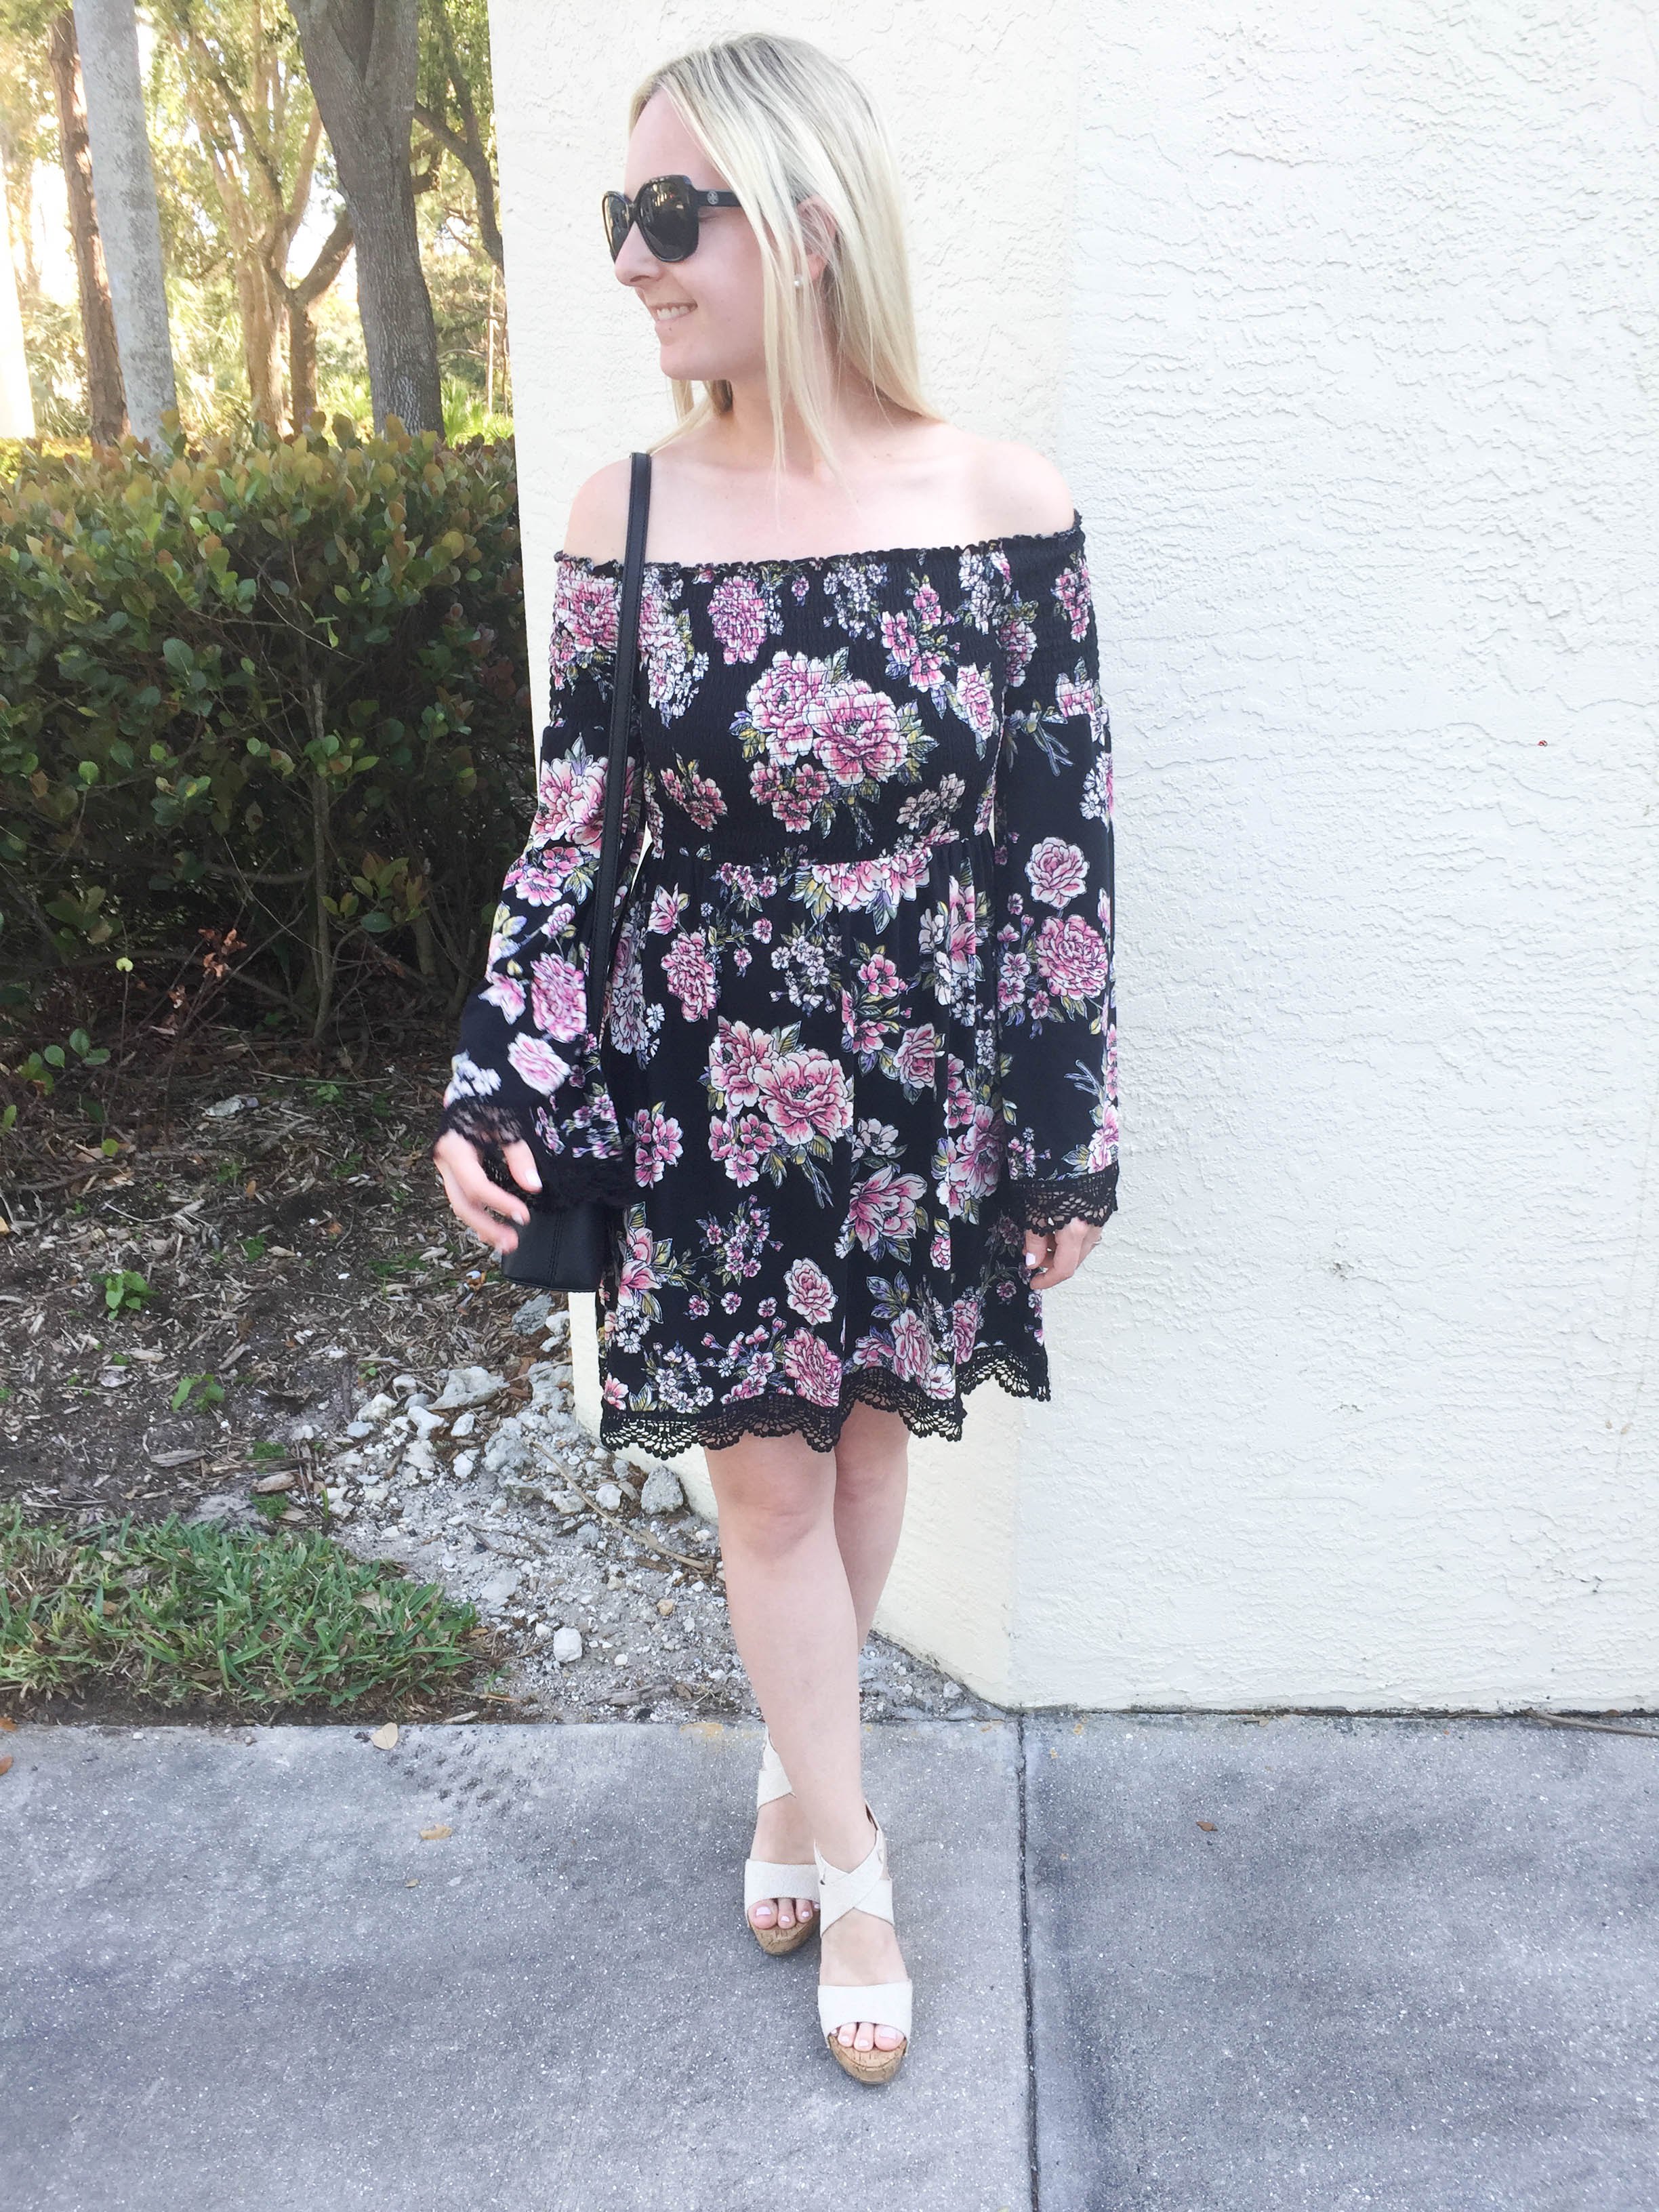 Target Off the Shoulder Dress on Livin' Life with Style